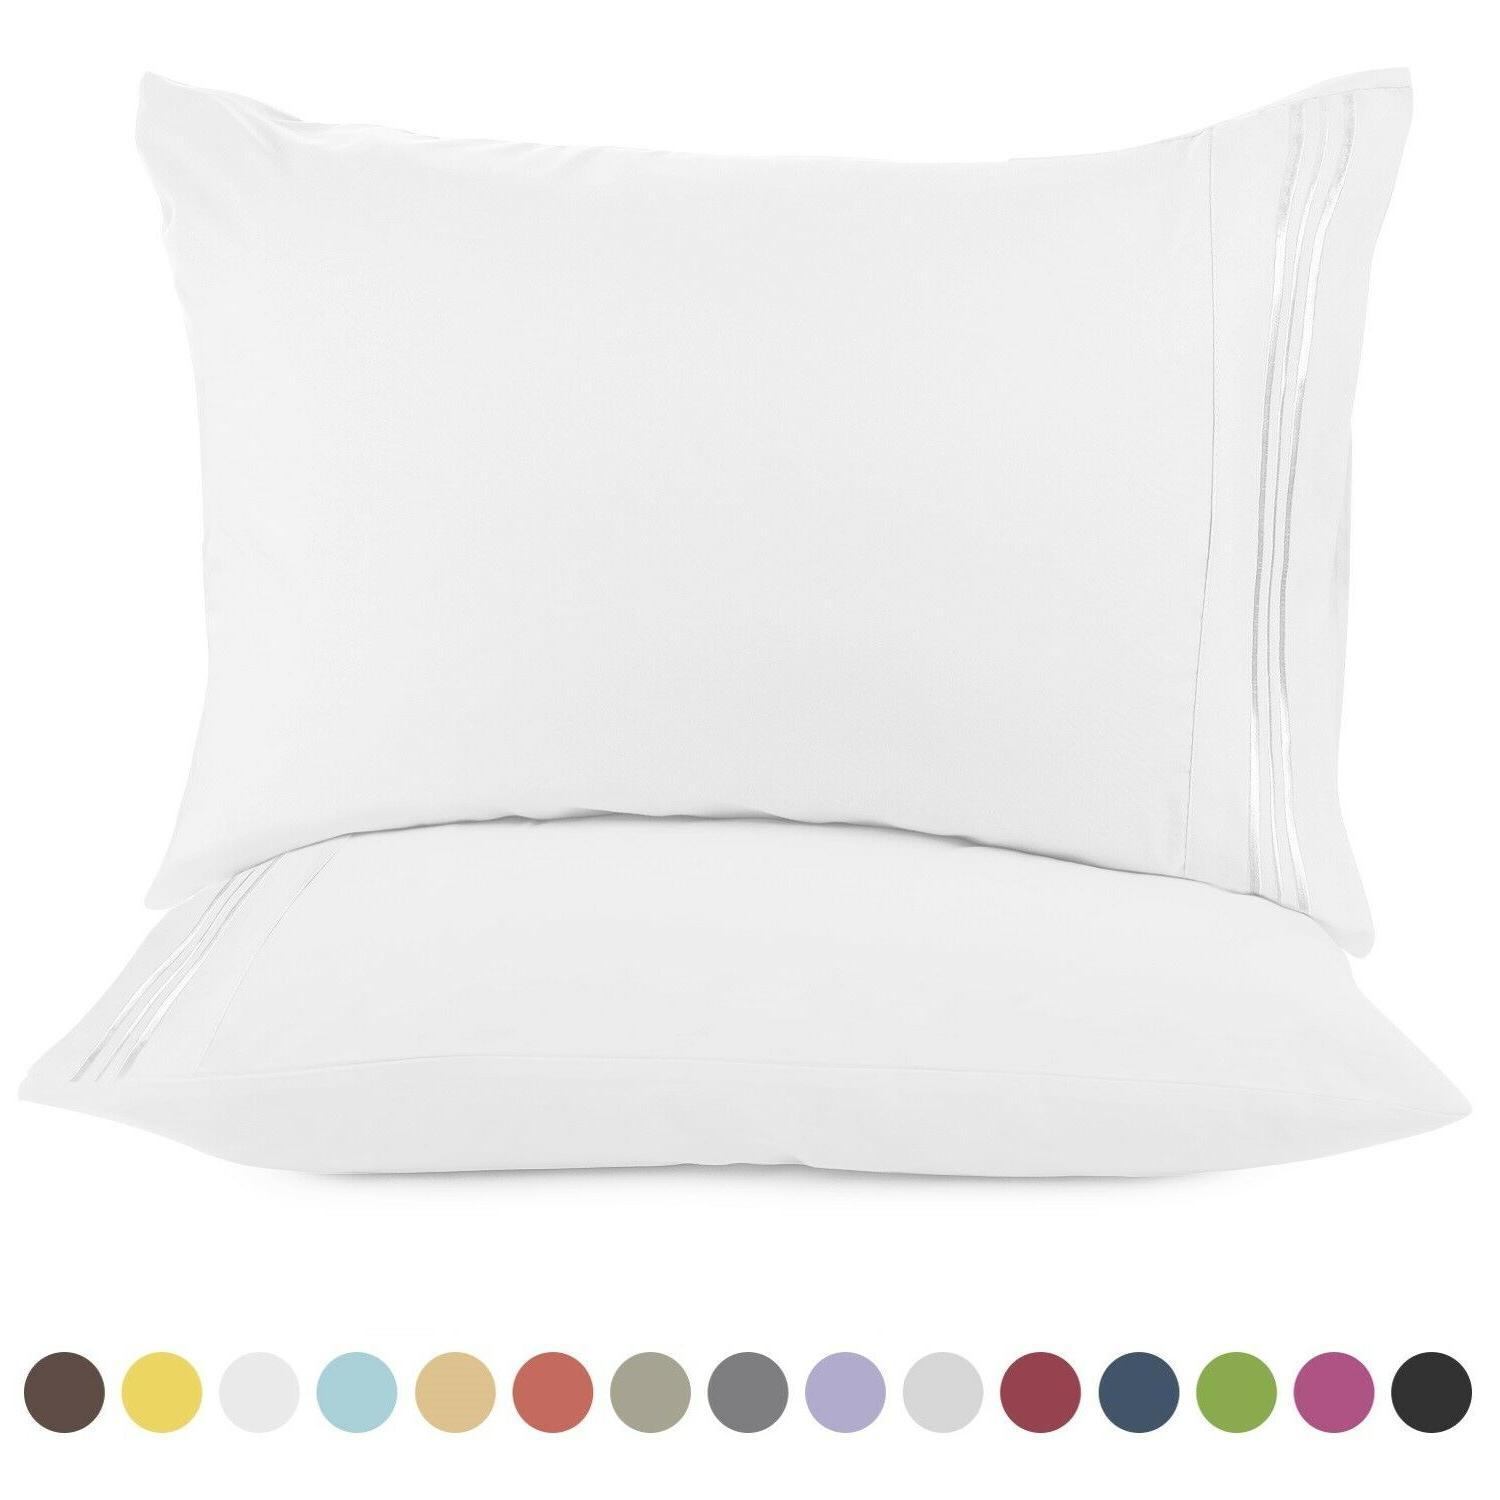 1800 pillow case set queen standard or